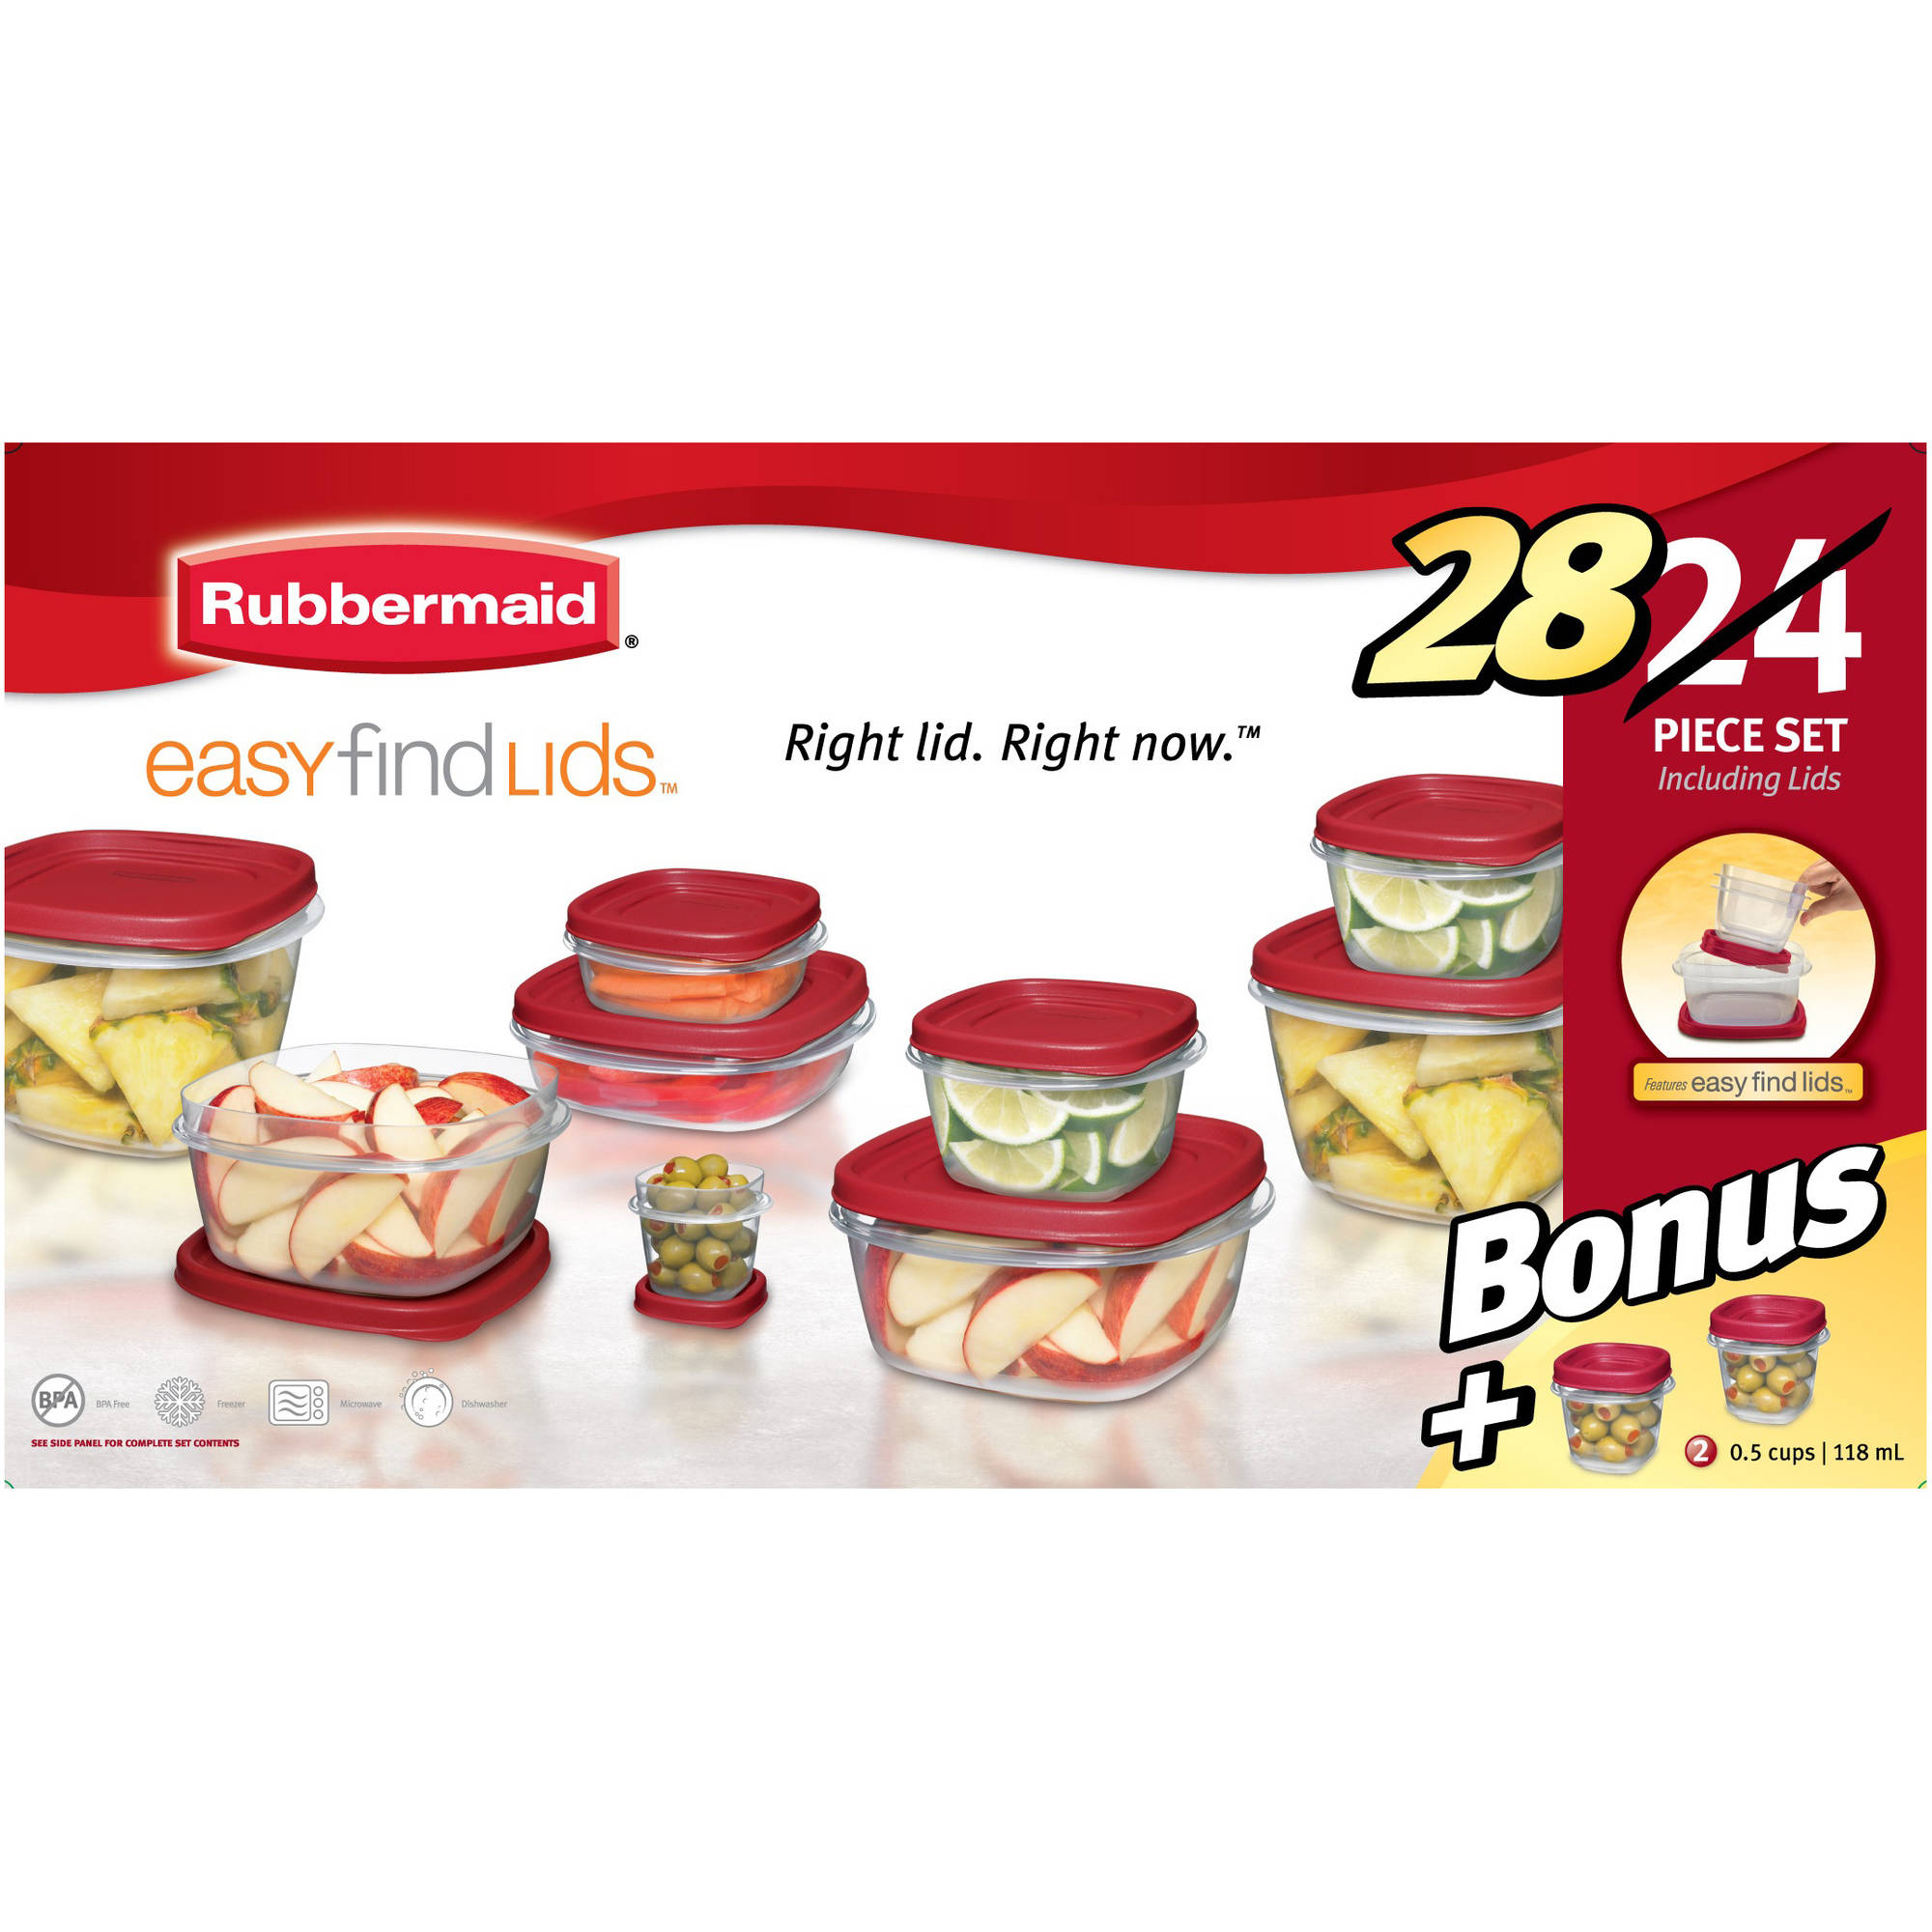 Charmant Rubbermaid Food Storage Containers With Easy Find Lids, 24 Piece Bonus Set    Walmart.com